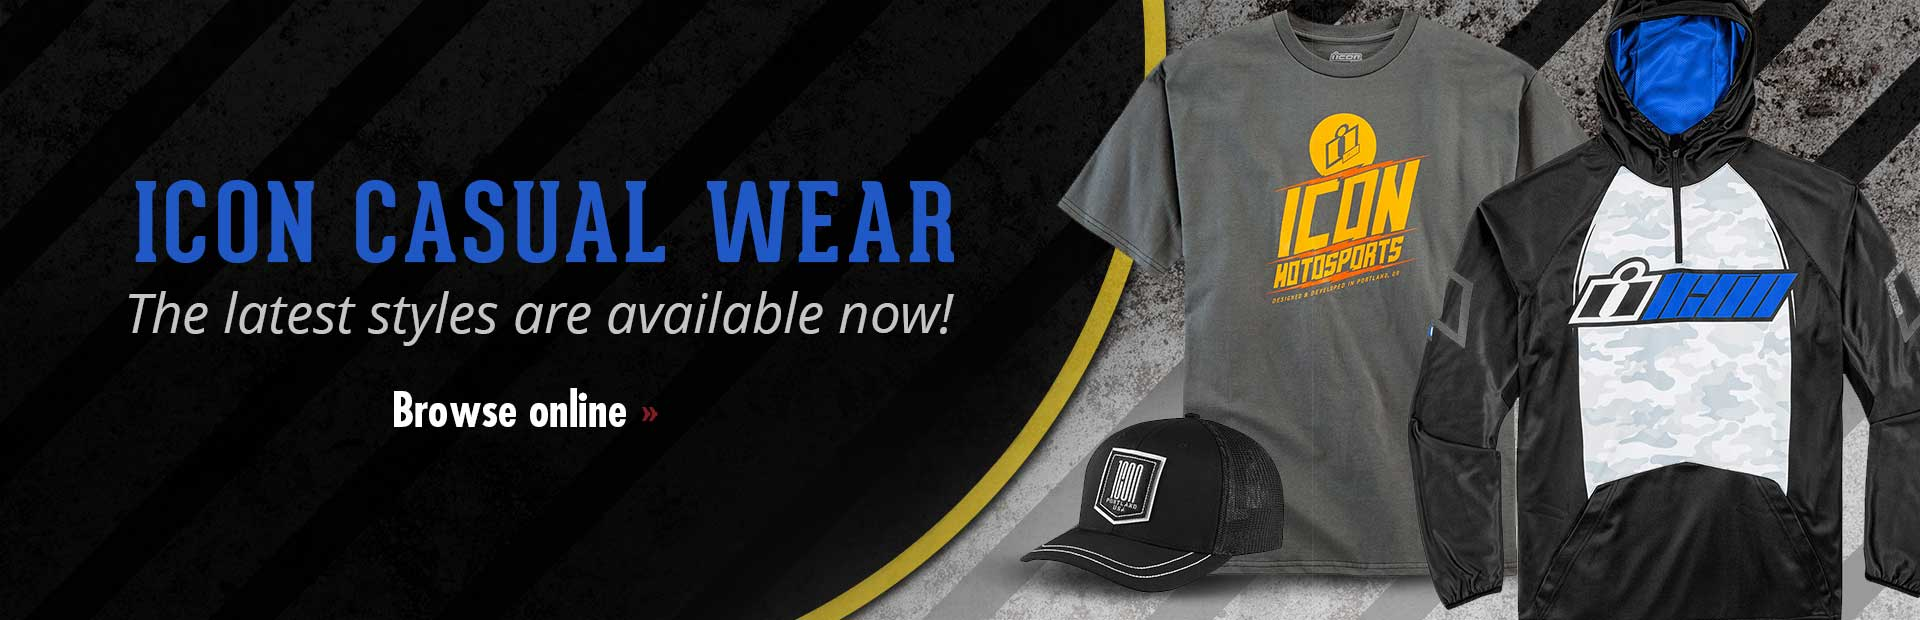 Click here to view Icon casual wear.